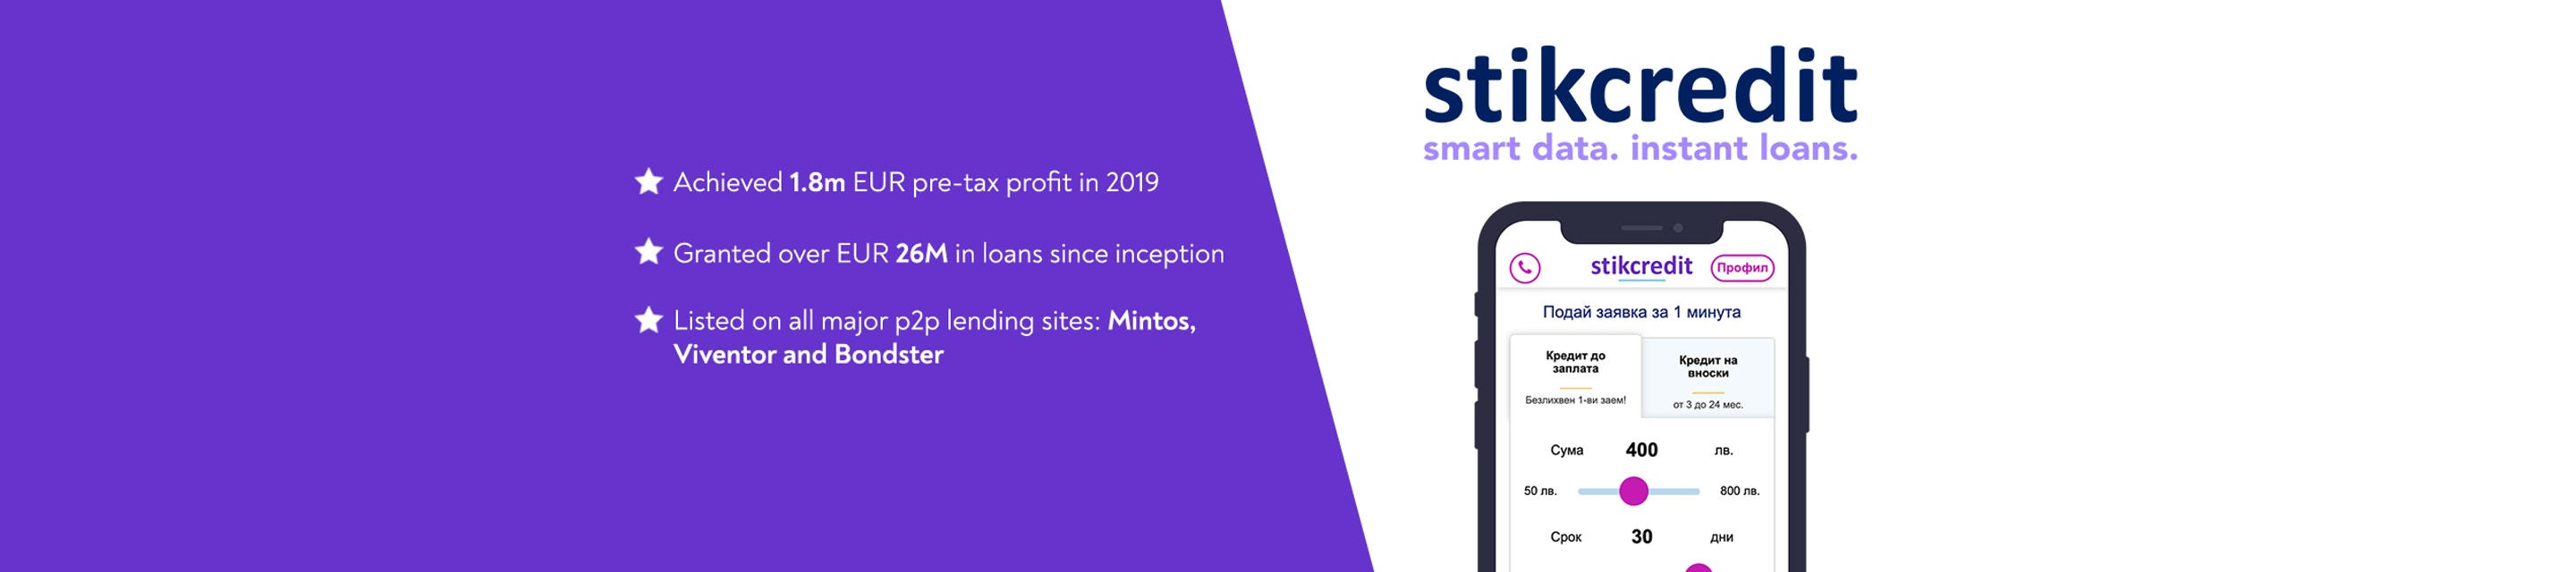 Stikcredit hero image